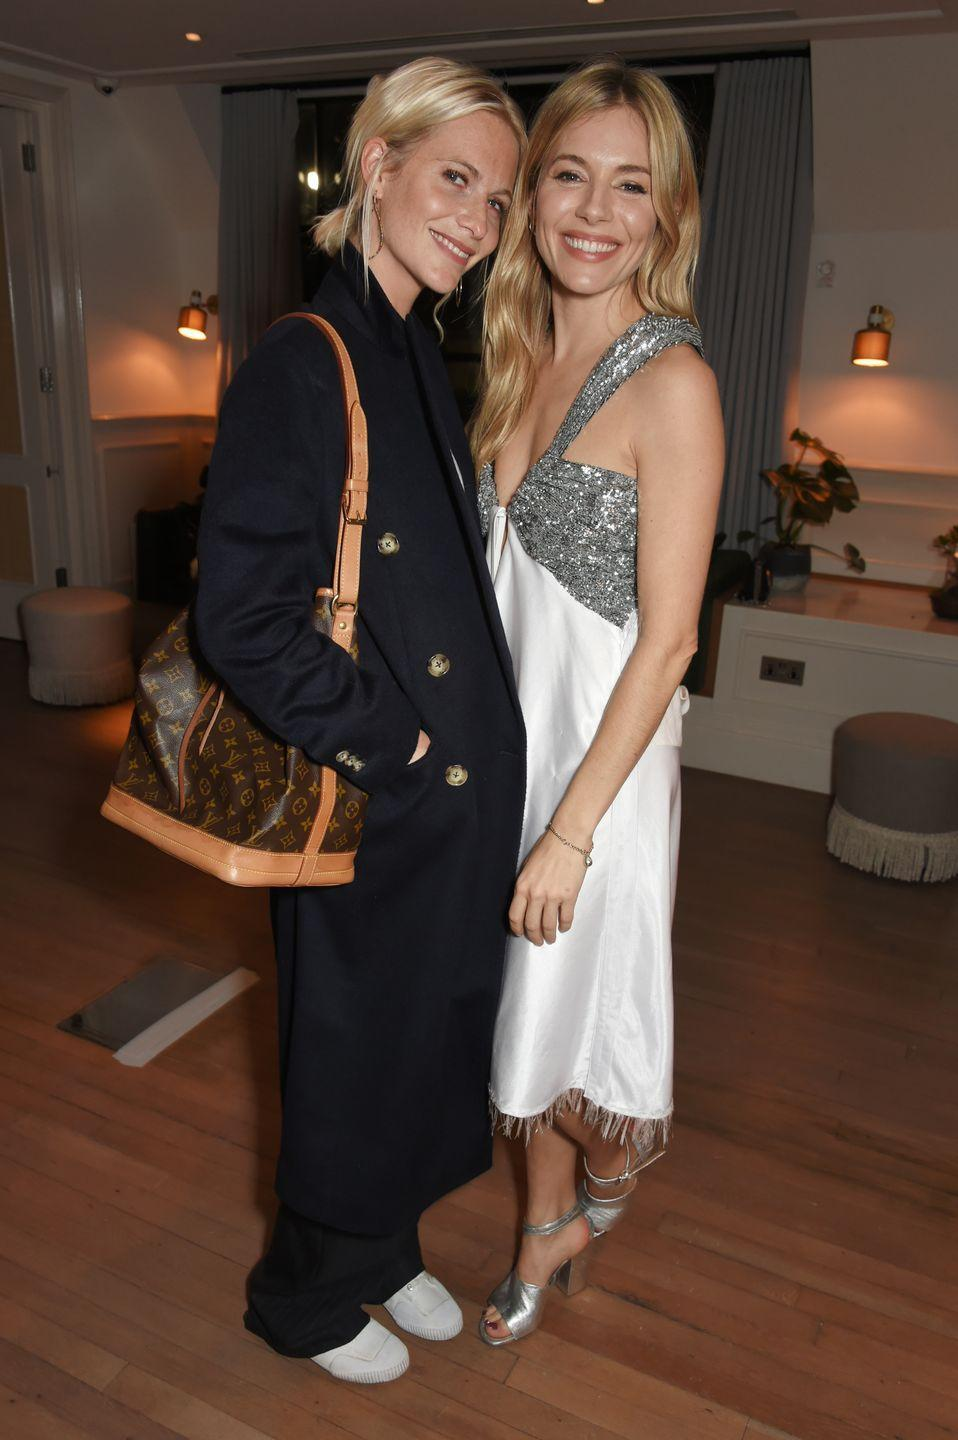 """<p>Delevingne moved to New York in 2008 from London to focus on her modeling and acting career. When she first moved, she was living with Miller who <a href=""""http://www.harpersbazaar.com/celebrity/party-pictures/a480/poppy-delevingne-fashion-0310/"""" rel=""""nofollow noopener"""" target=""""_blank"""" data-ylk=""""slk:said"""" class=""""link rapid-noclick-resp"""">said</a>, """"She doesn't take herself too seriously, which isn't as common as you'd think.""""</p>"""